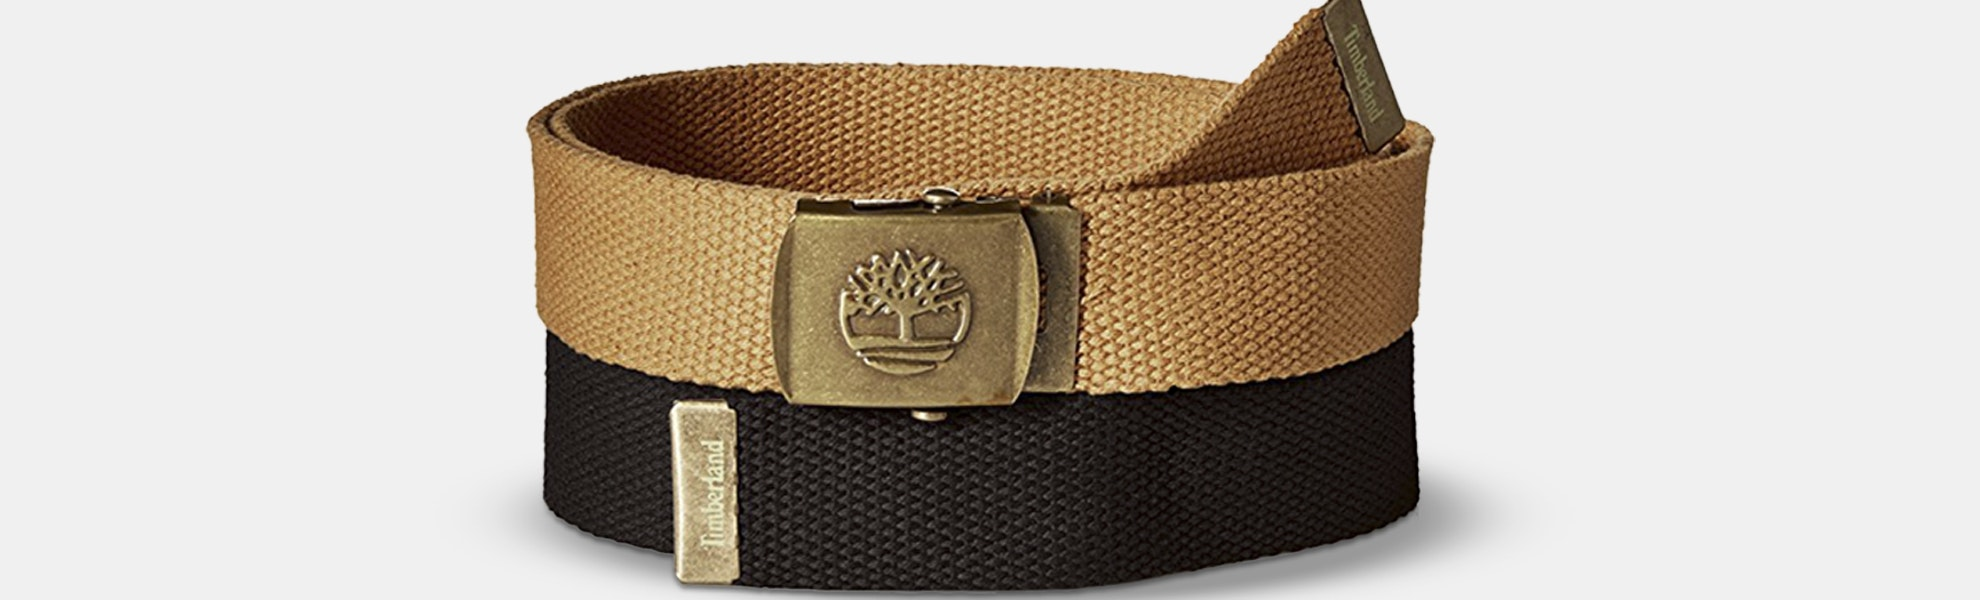 Timberland Belts 2-Pack